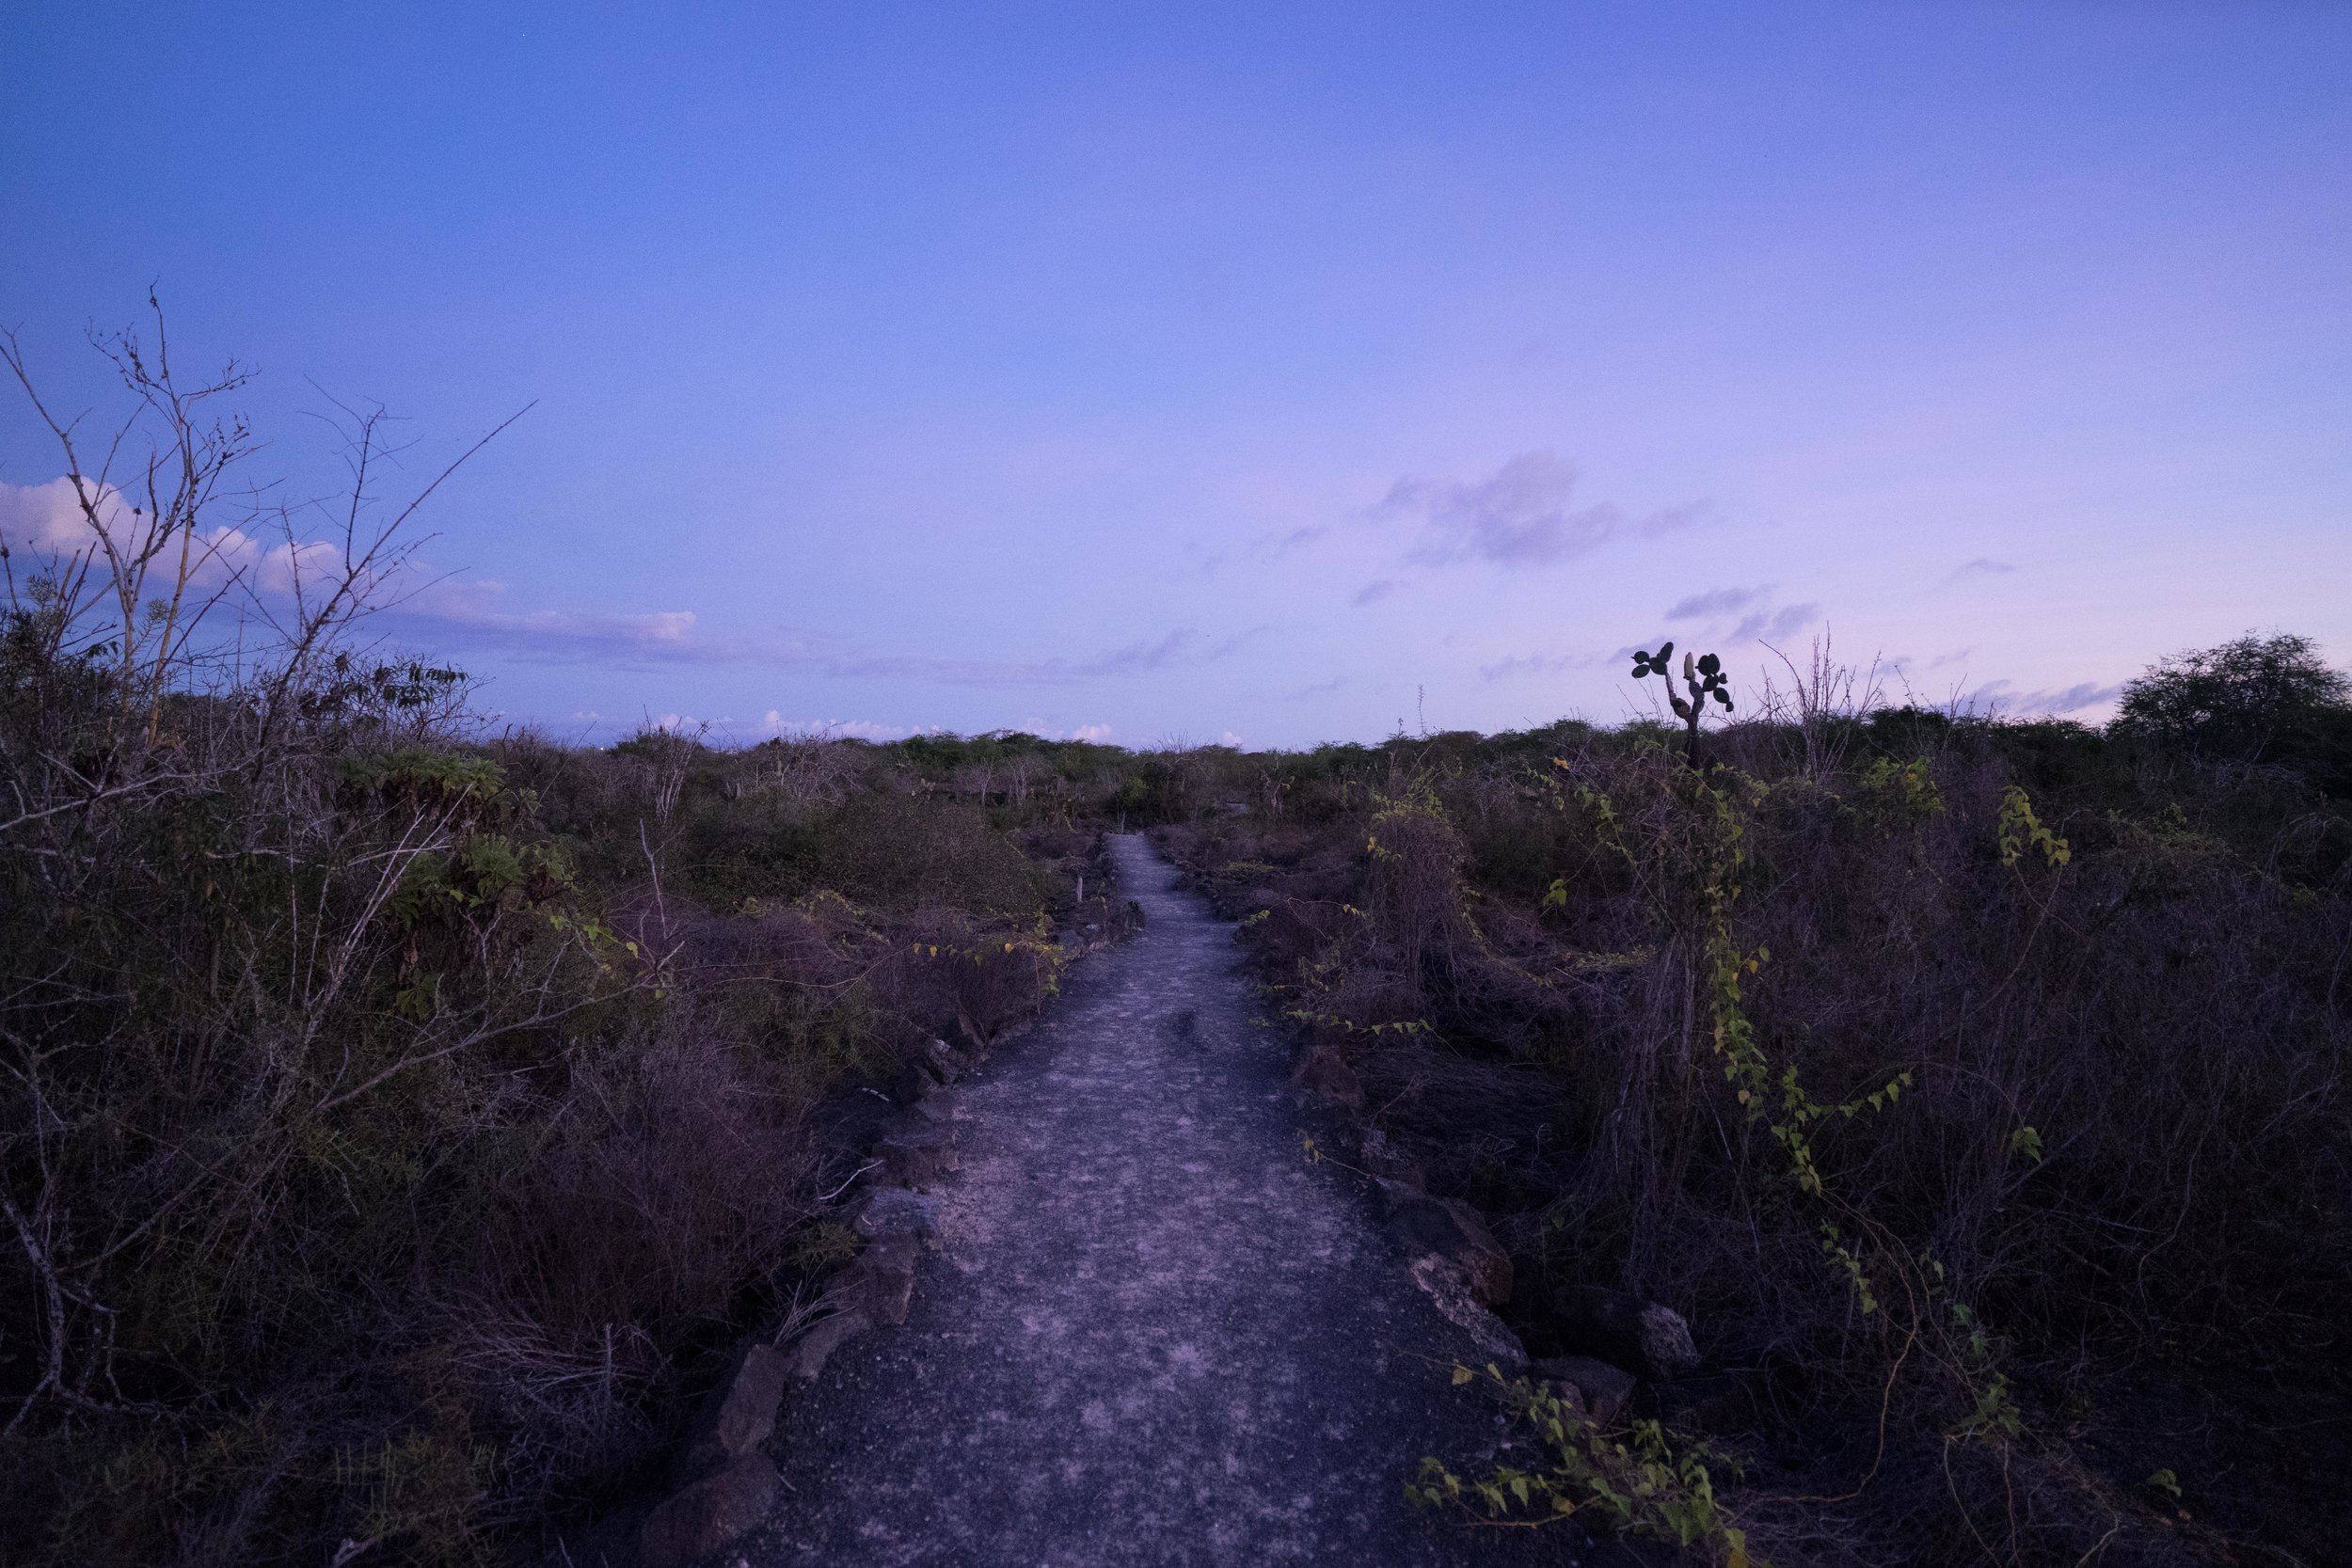 The trail connecting the Humedales/Wetlands to the Giant tortoise breeding center